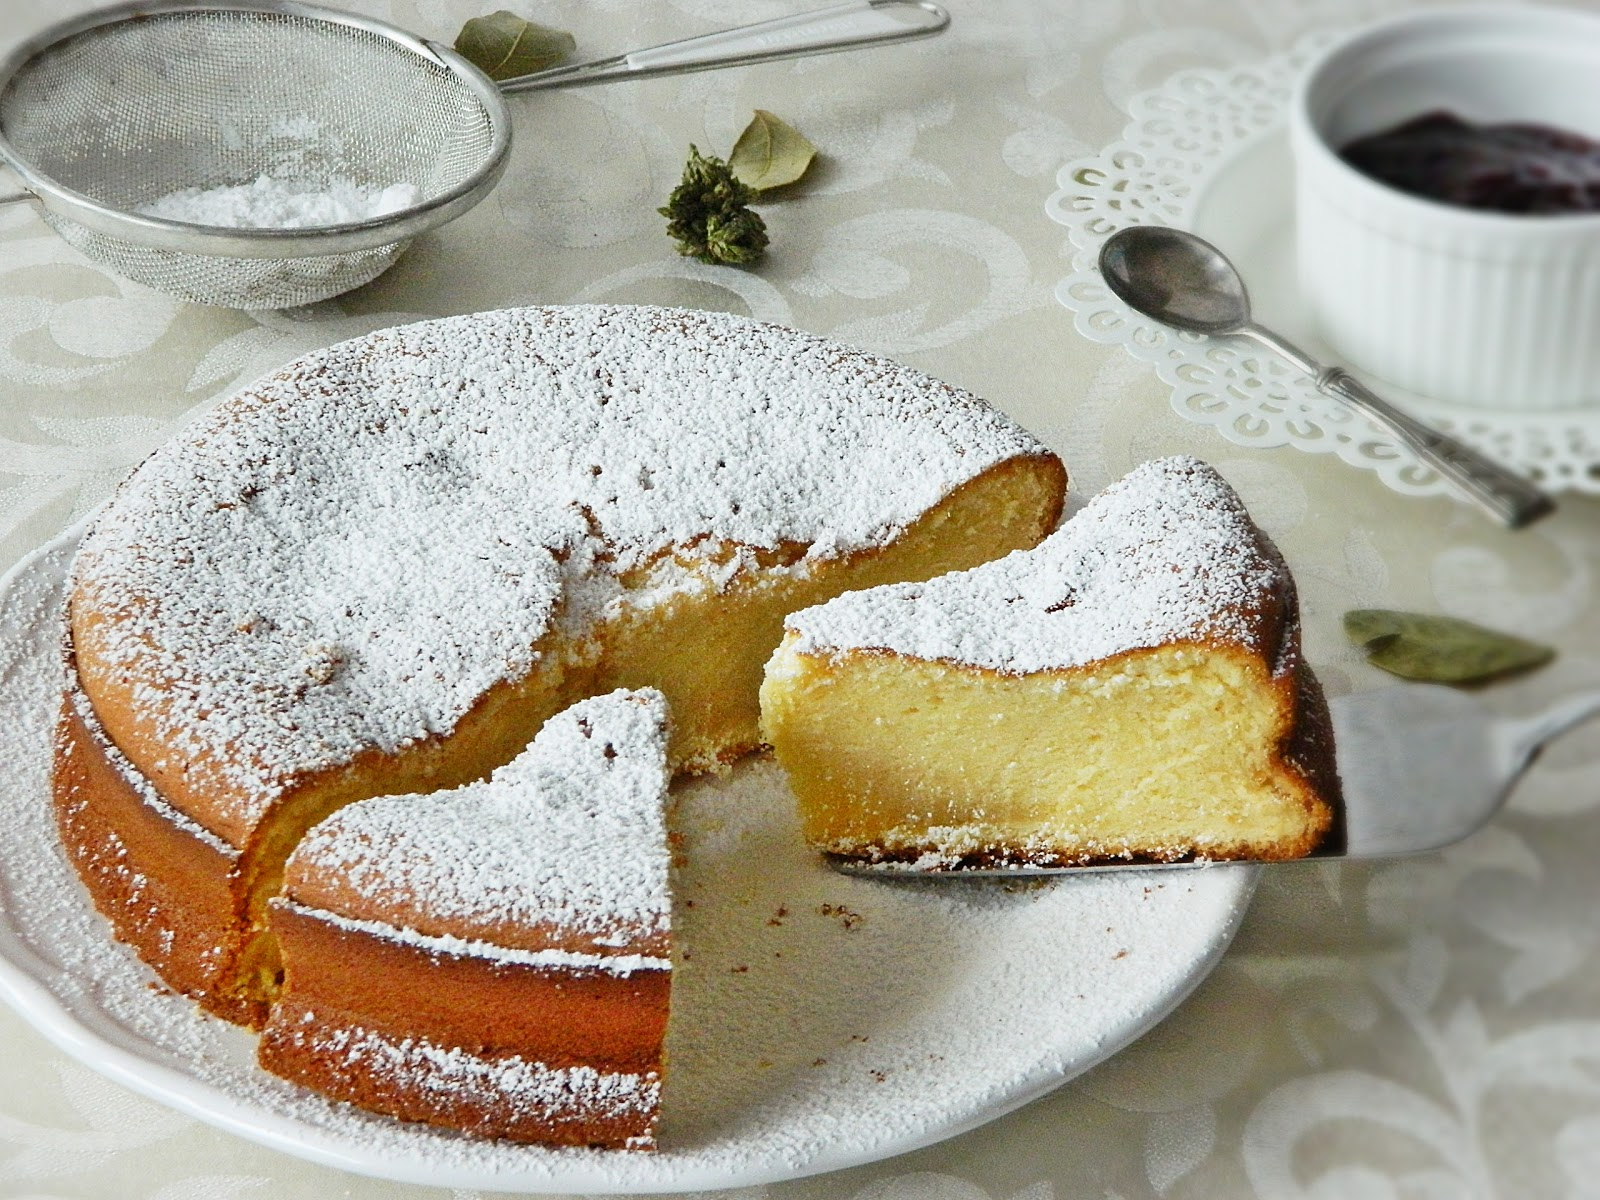 Cake Recipes Using Sweetened Condensed Milk